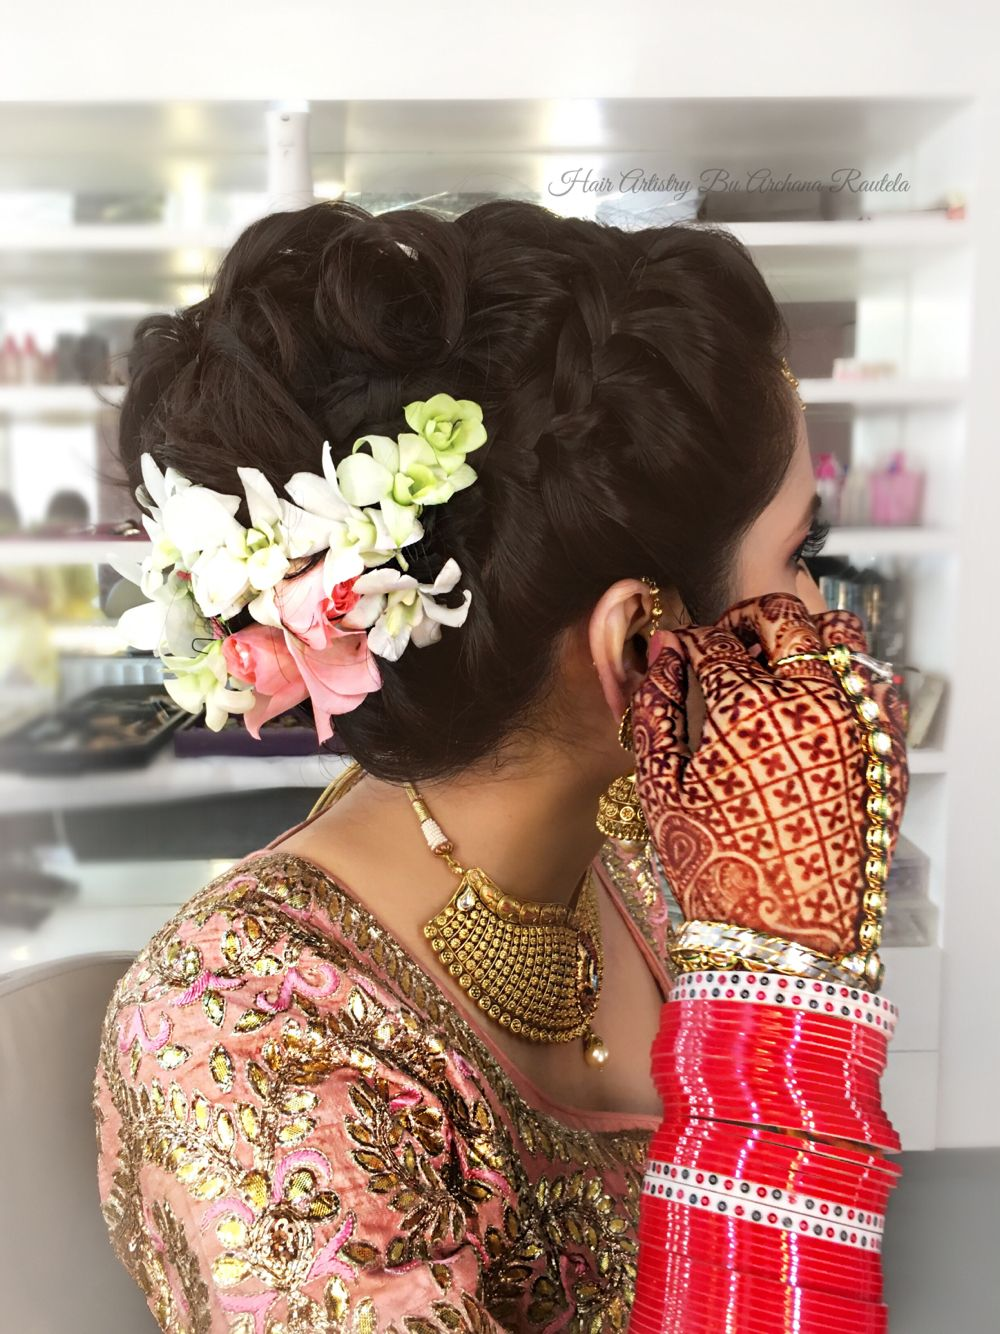 Beautiful gorgeous bride Suruchi, flowers on the hair Hair Artistry By Archana Rautela